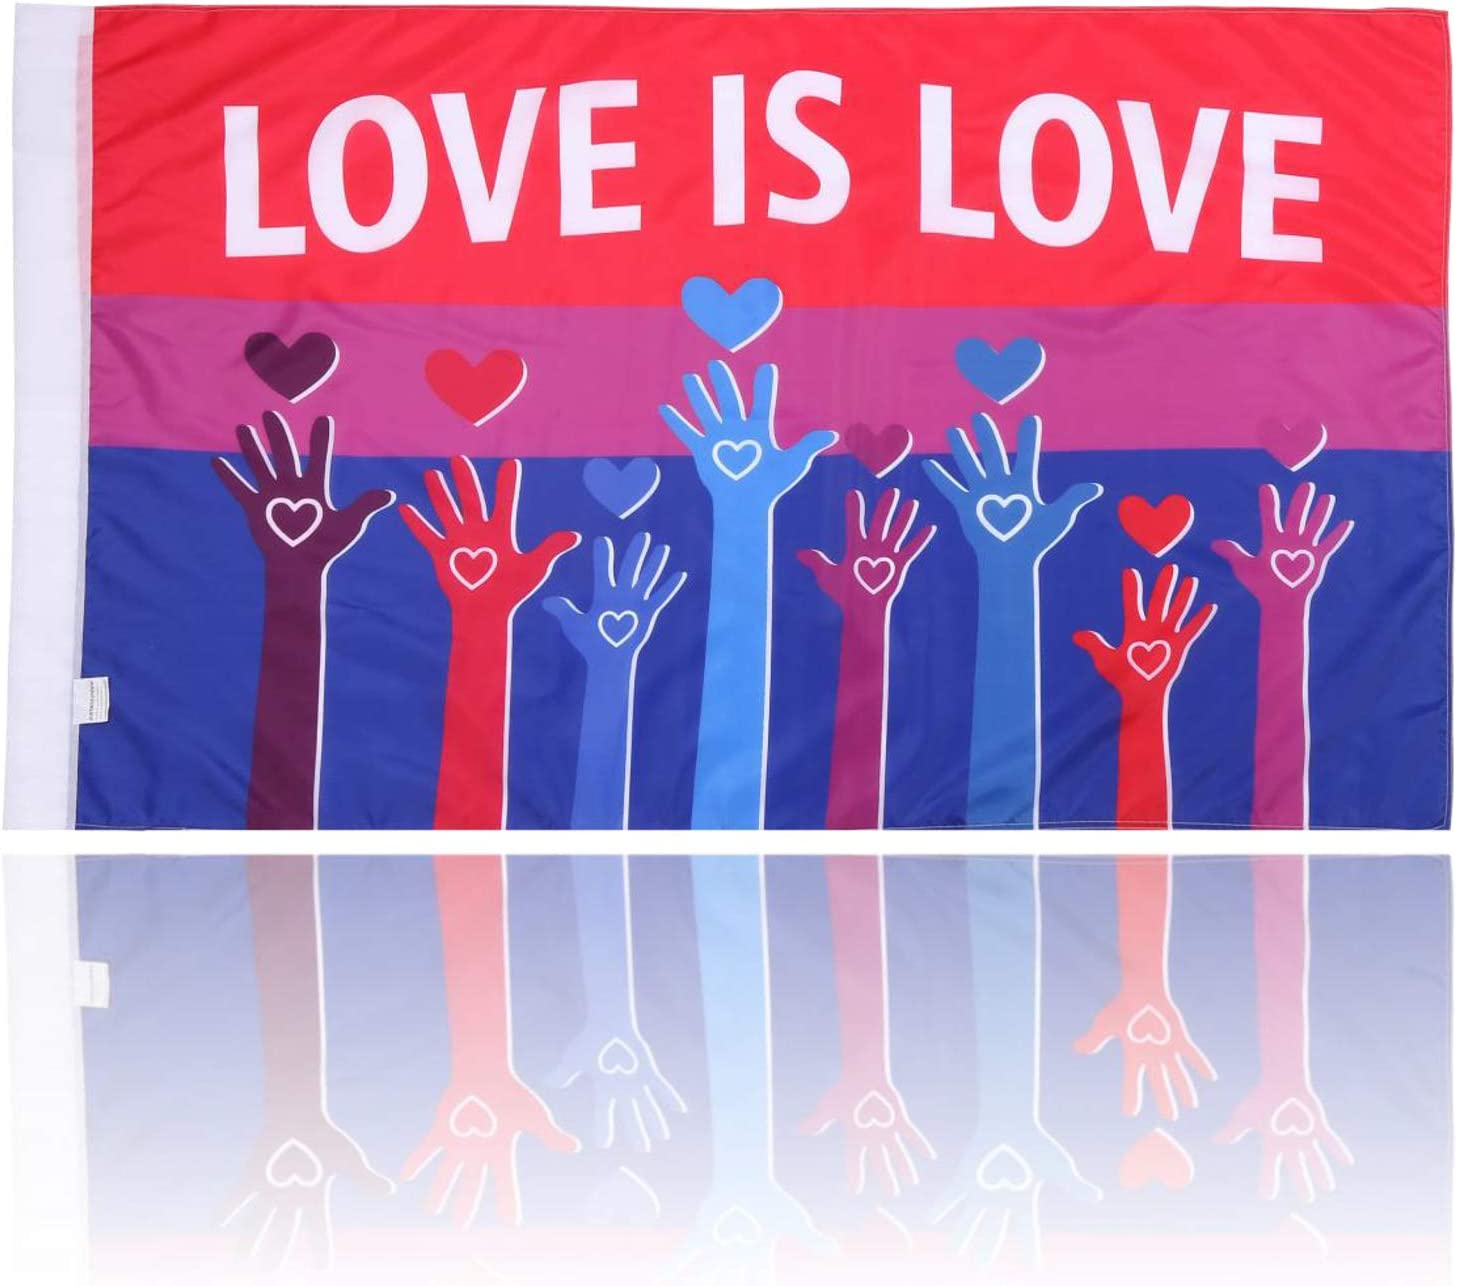 BATATADOCE Bisexual Pride Flag Progress Bi Banner-3x5 Fts LGBT Bisexual Flags,Parade Garden House Outdoor Banner Flags-UV Fade Resistant Slogan Flag- Love is Love